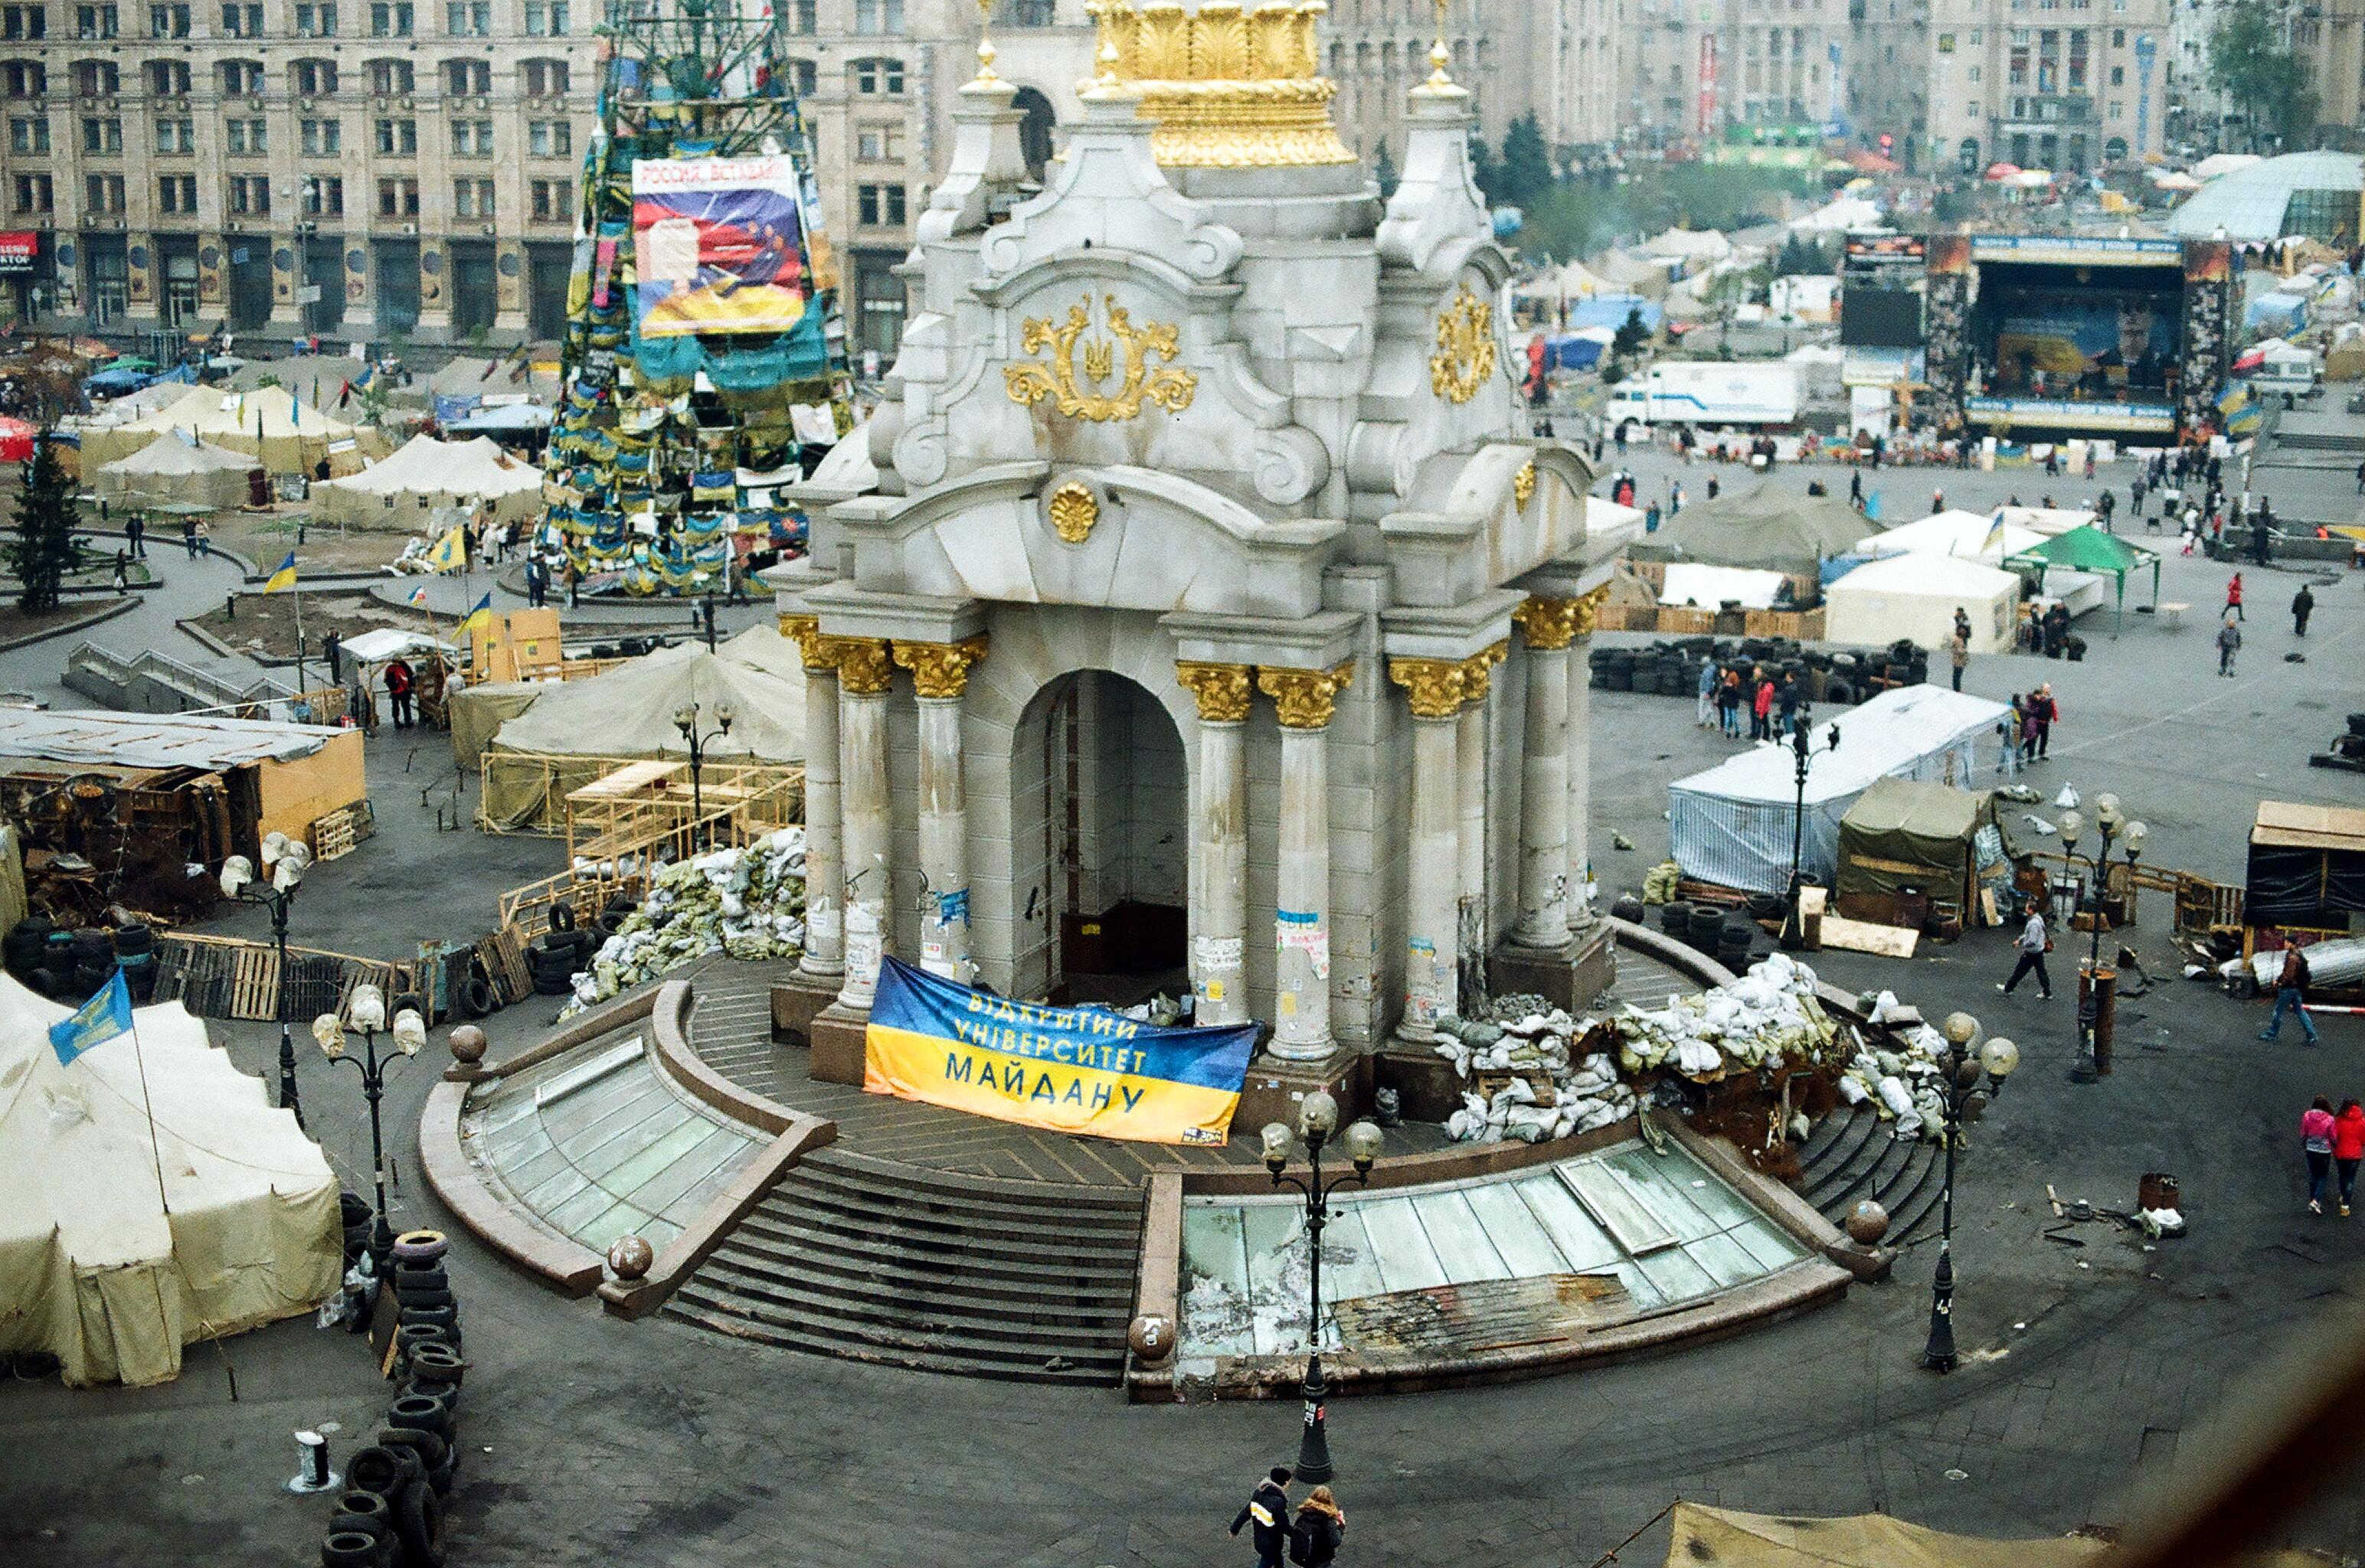 The set of protests in Ukraine.